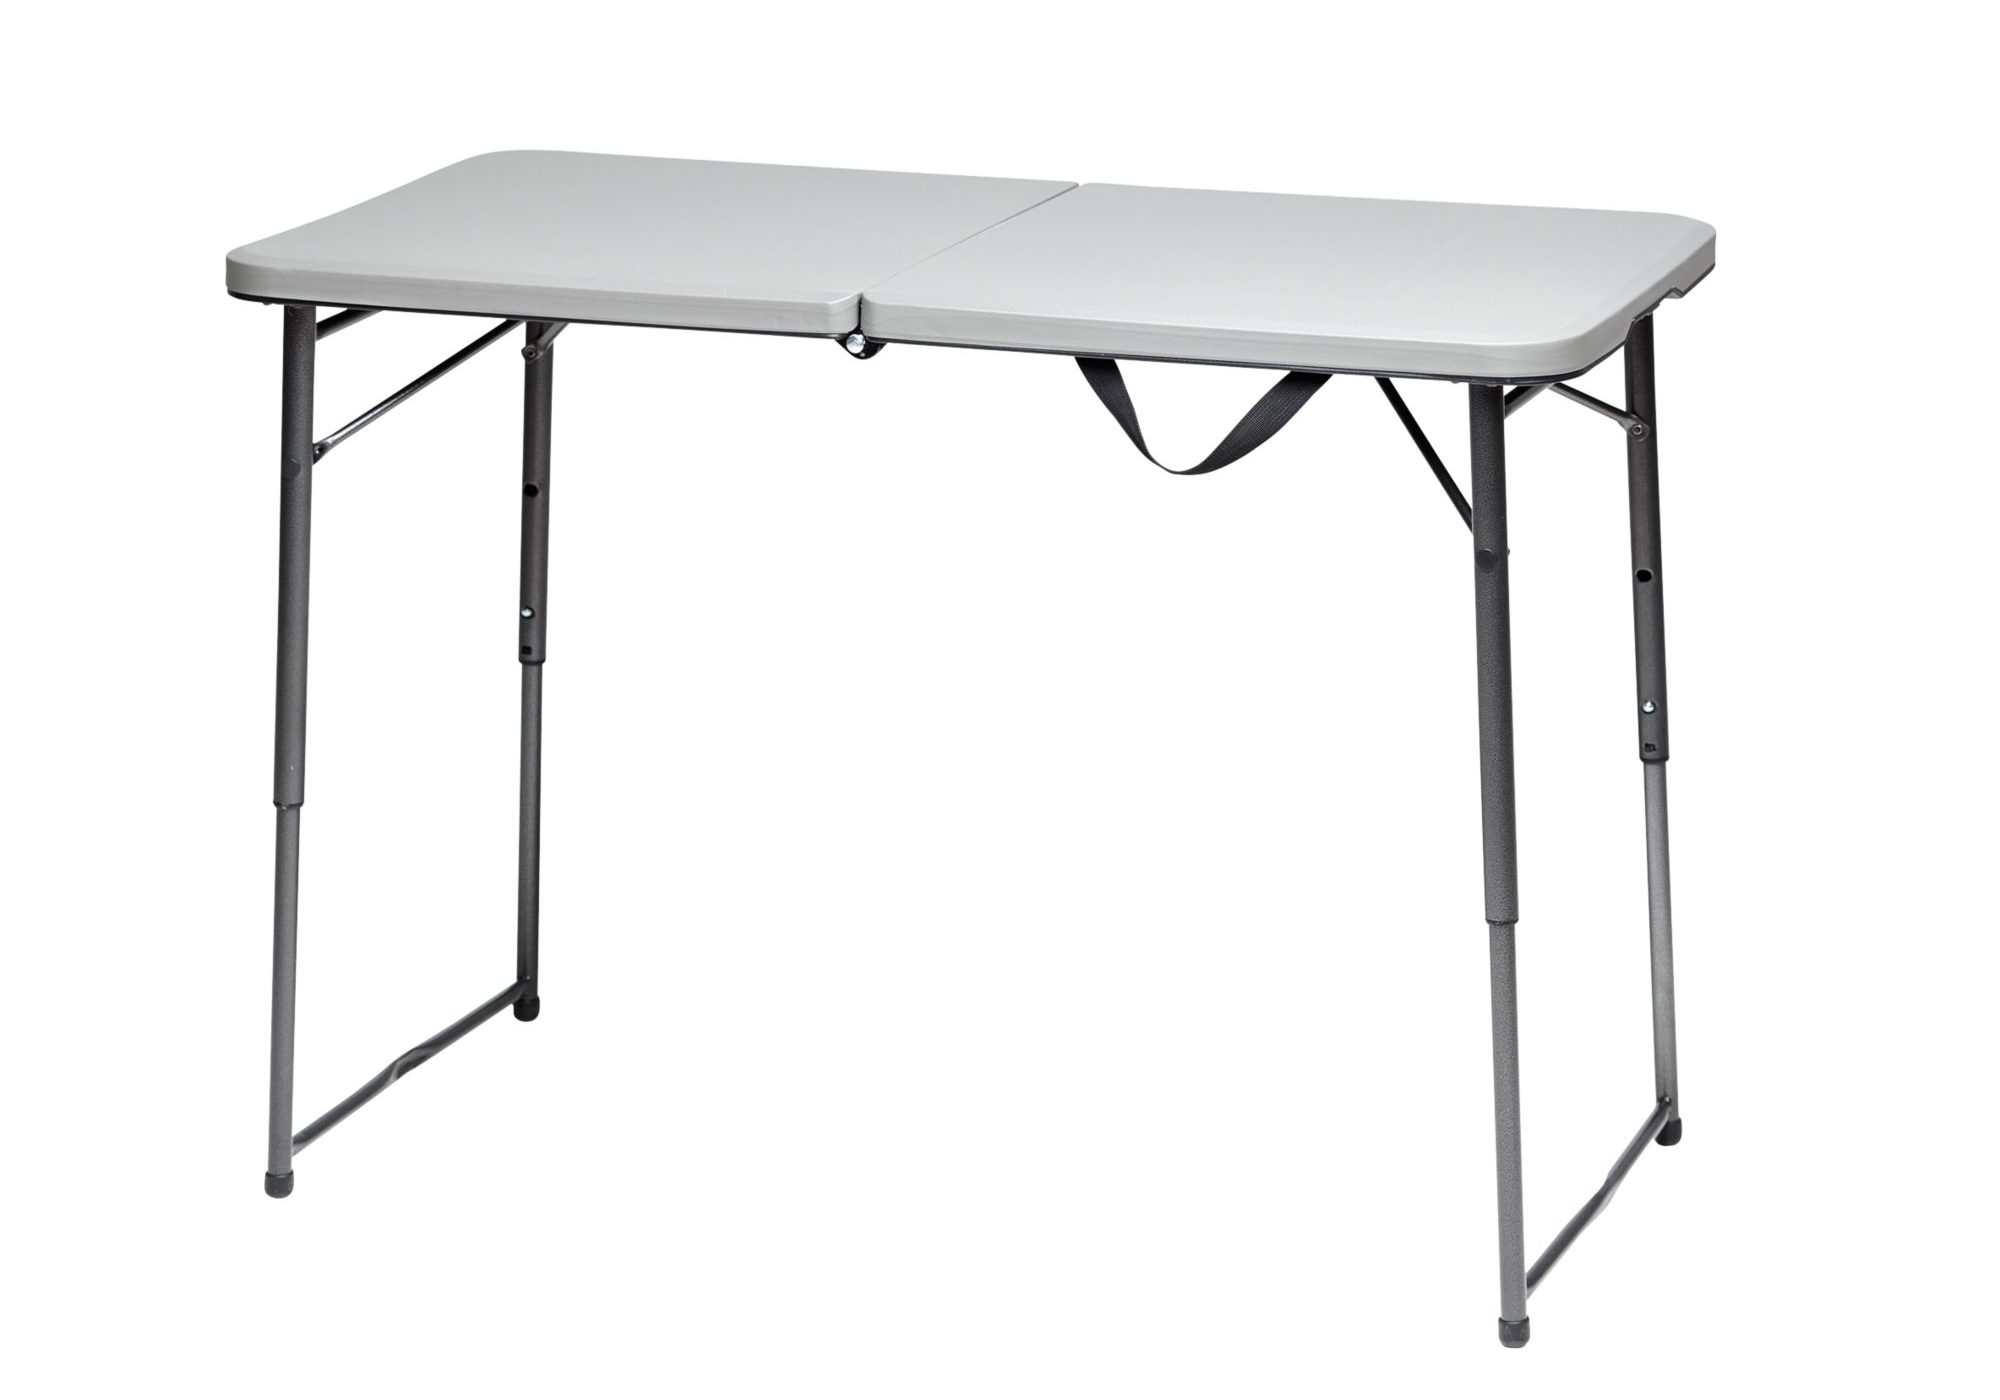 Best Camping Table In Australia For 2019 Outback Review